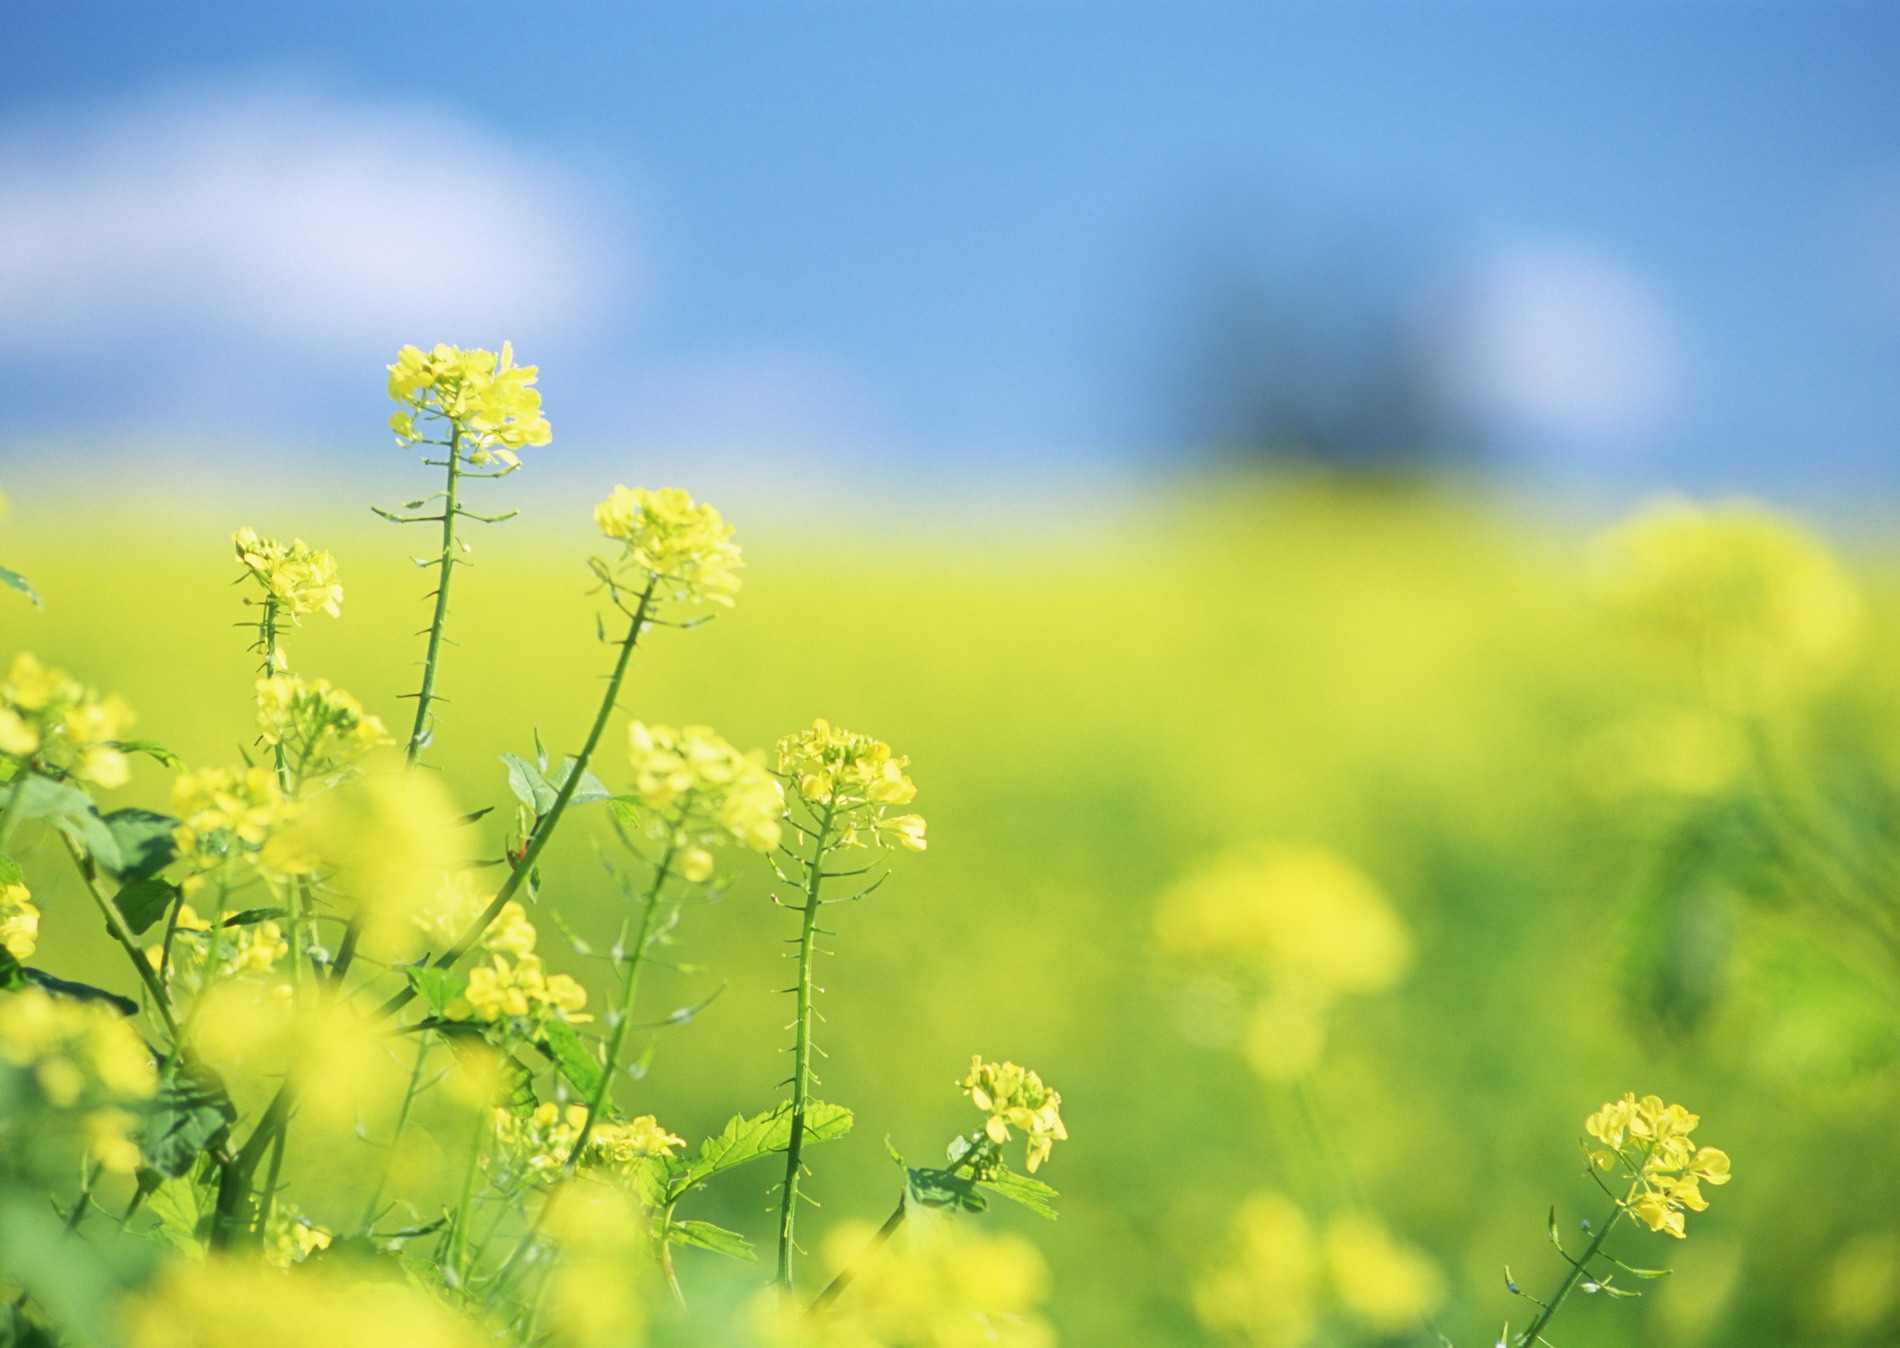 http://basik.ru/images/field_with_flowers/01_field_with_flowers.jpg